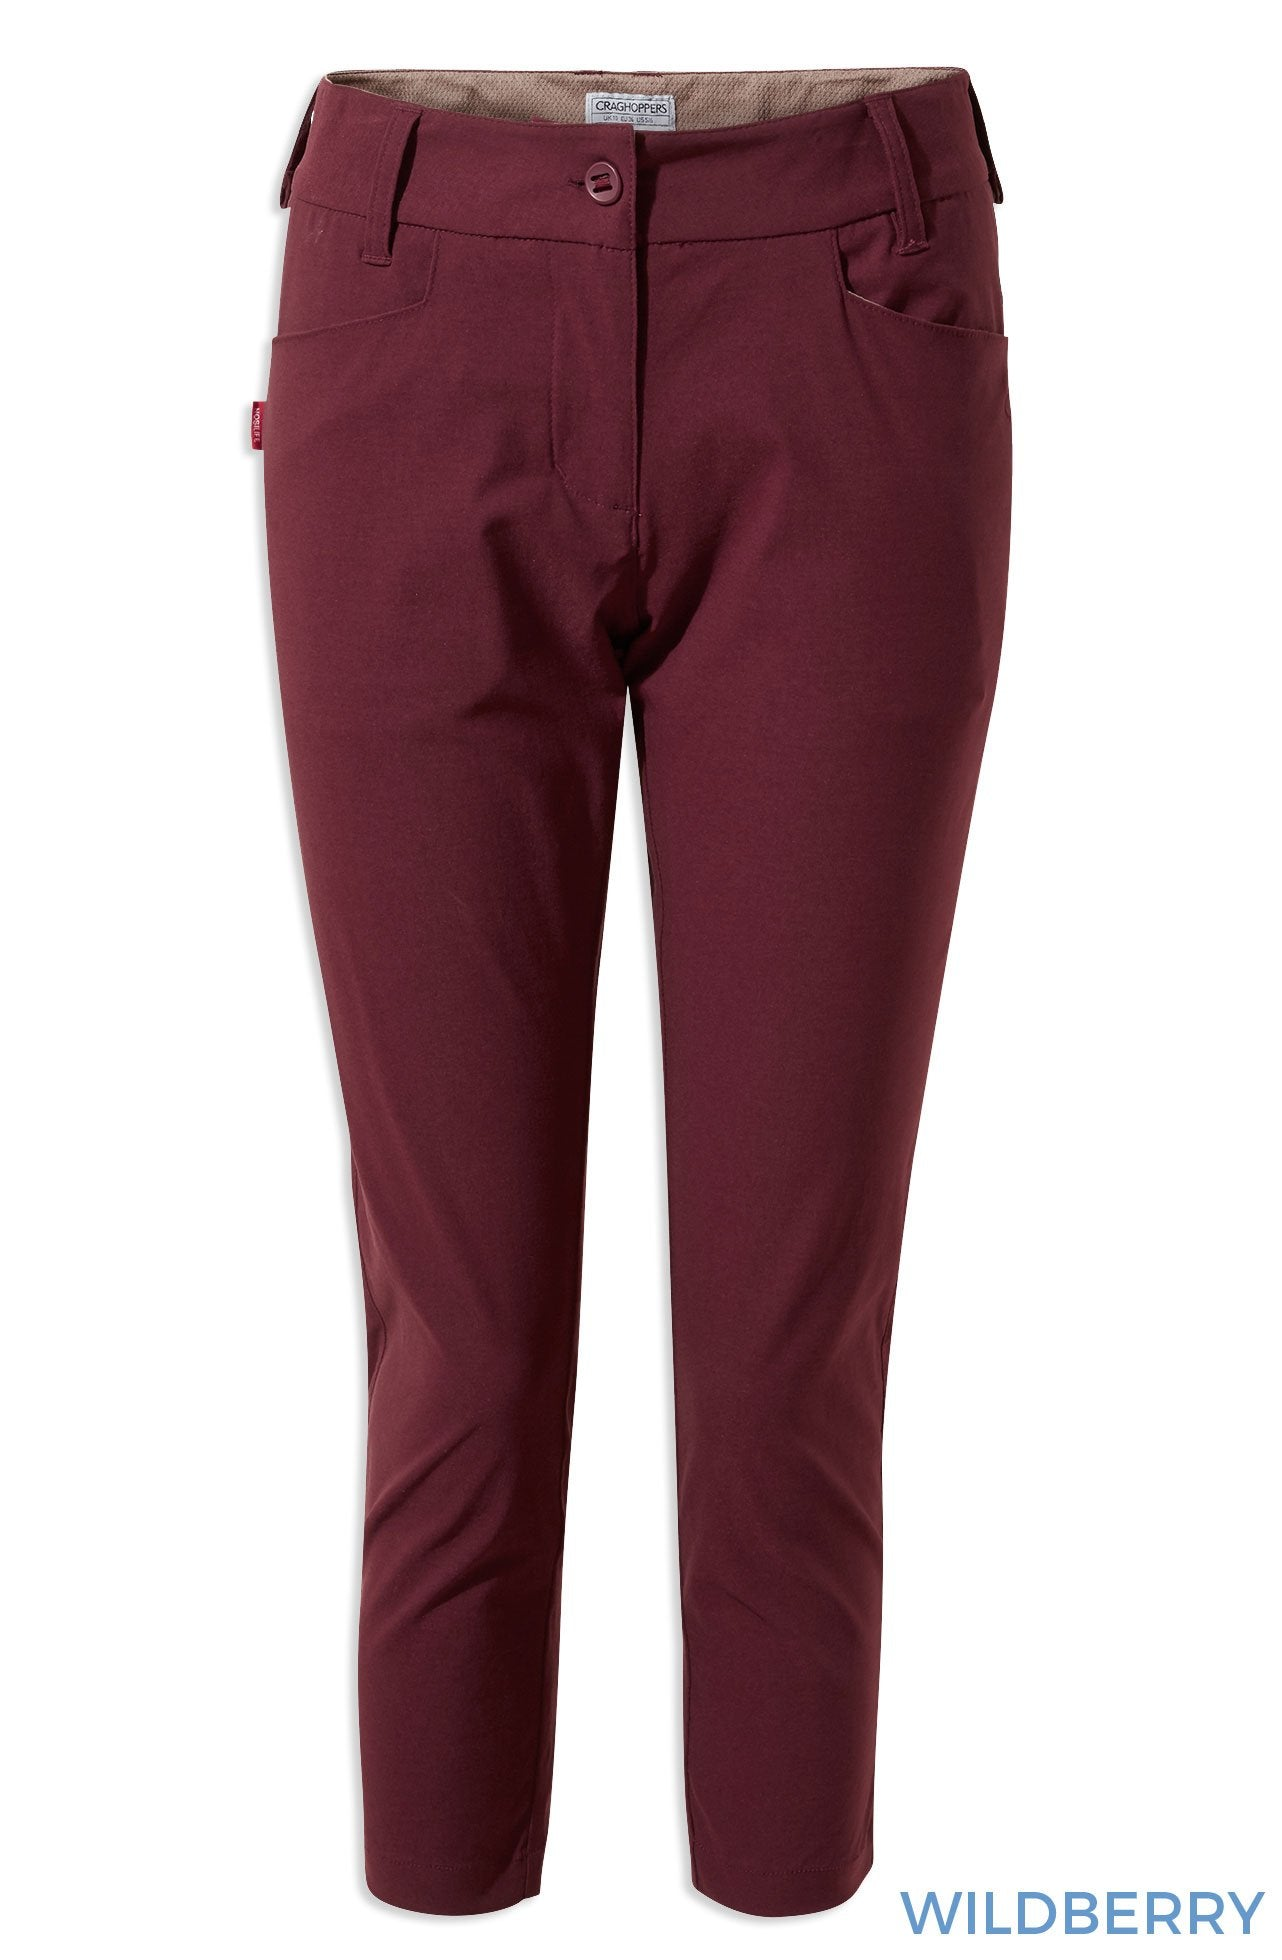 Wildberry Craghoppers NosiLife Clara Crop Trousers